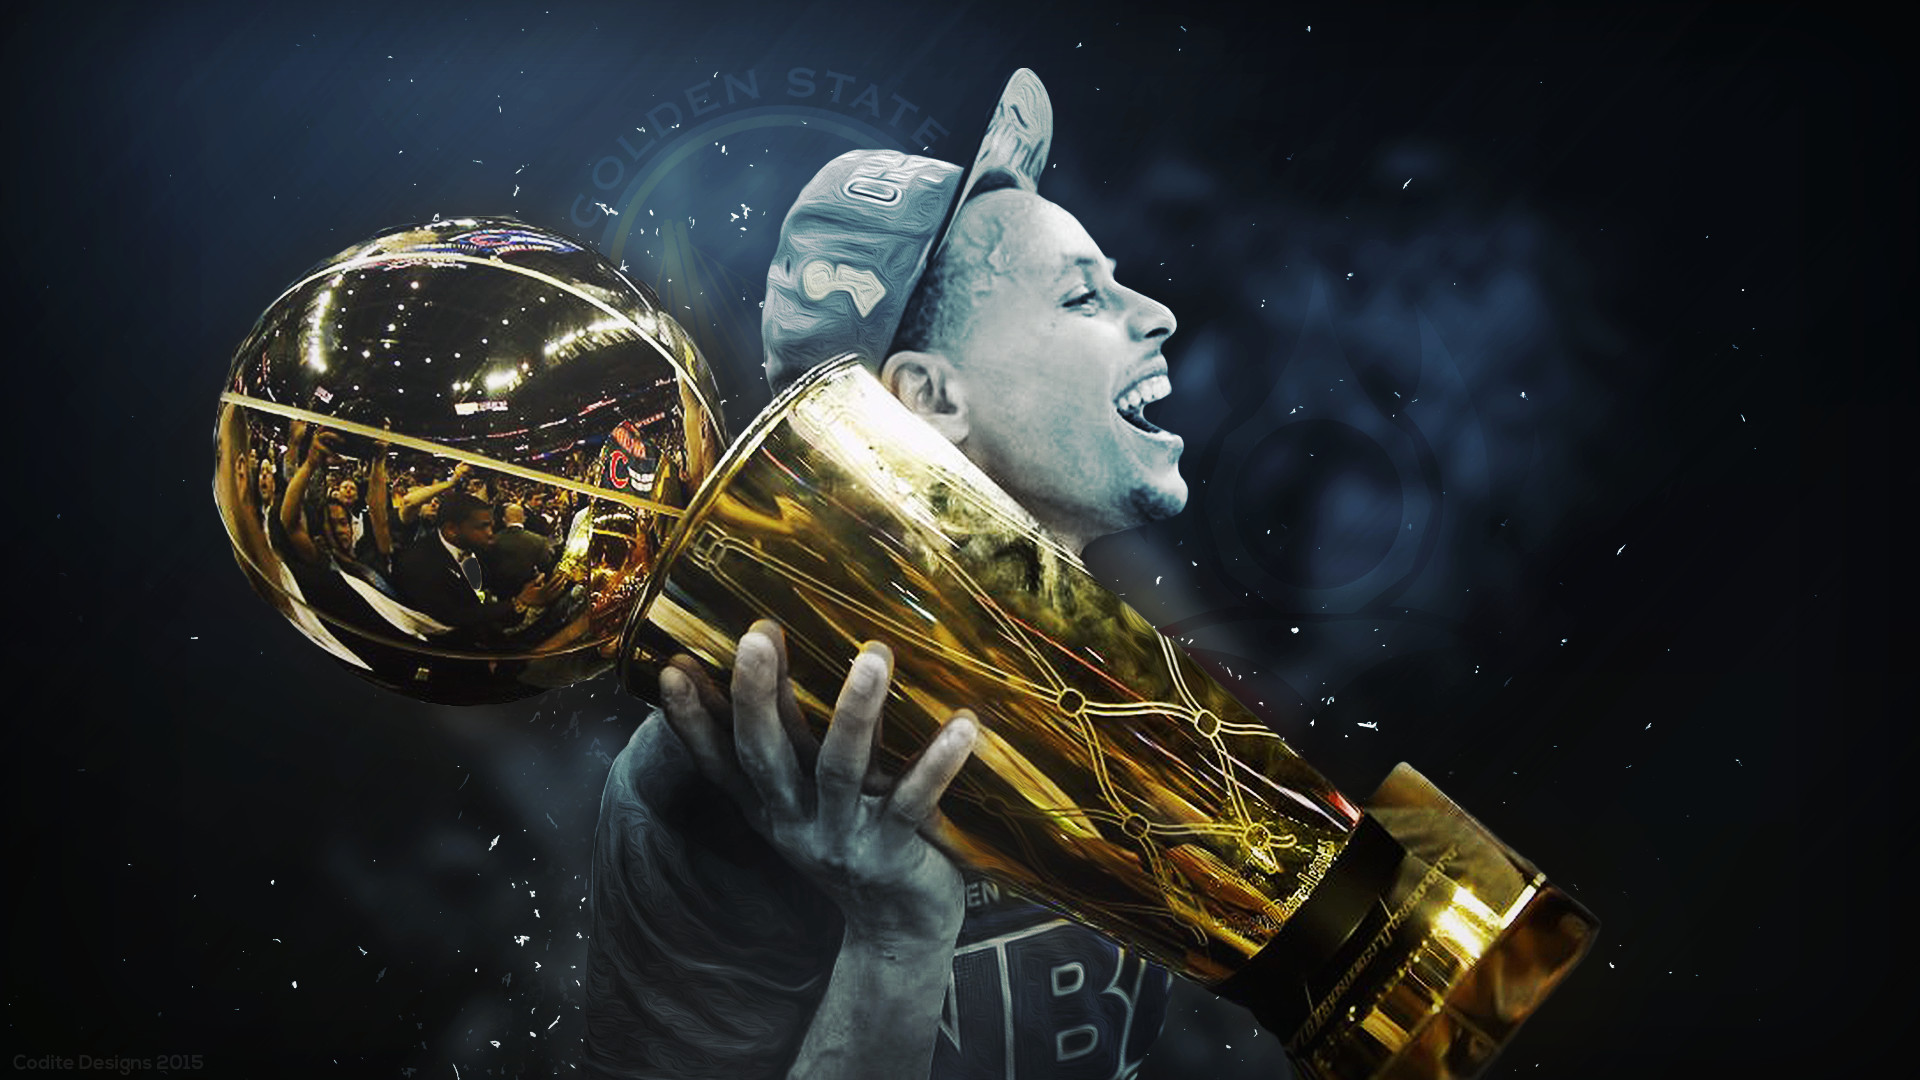 Stephen Curry Wallpaper Free Download   Wallpapers, Backgrounds …   look  at this   Pinterest   Stephen curry wallpaper, Curry wallpaper and Stephen  curry